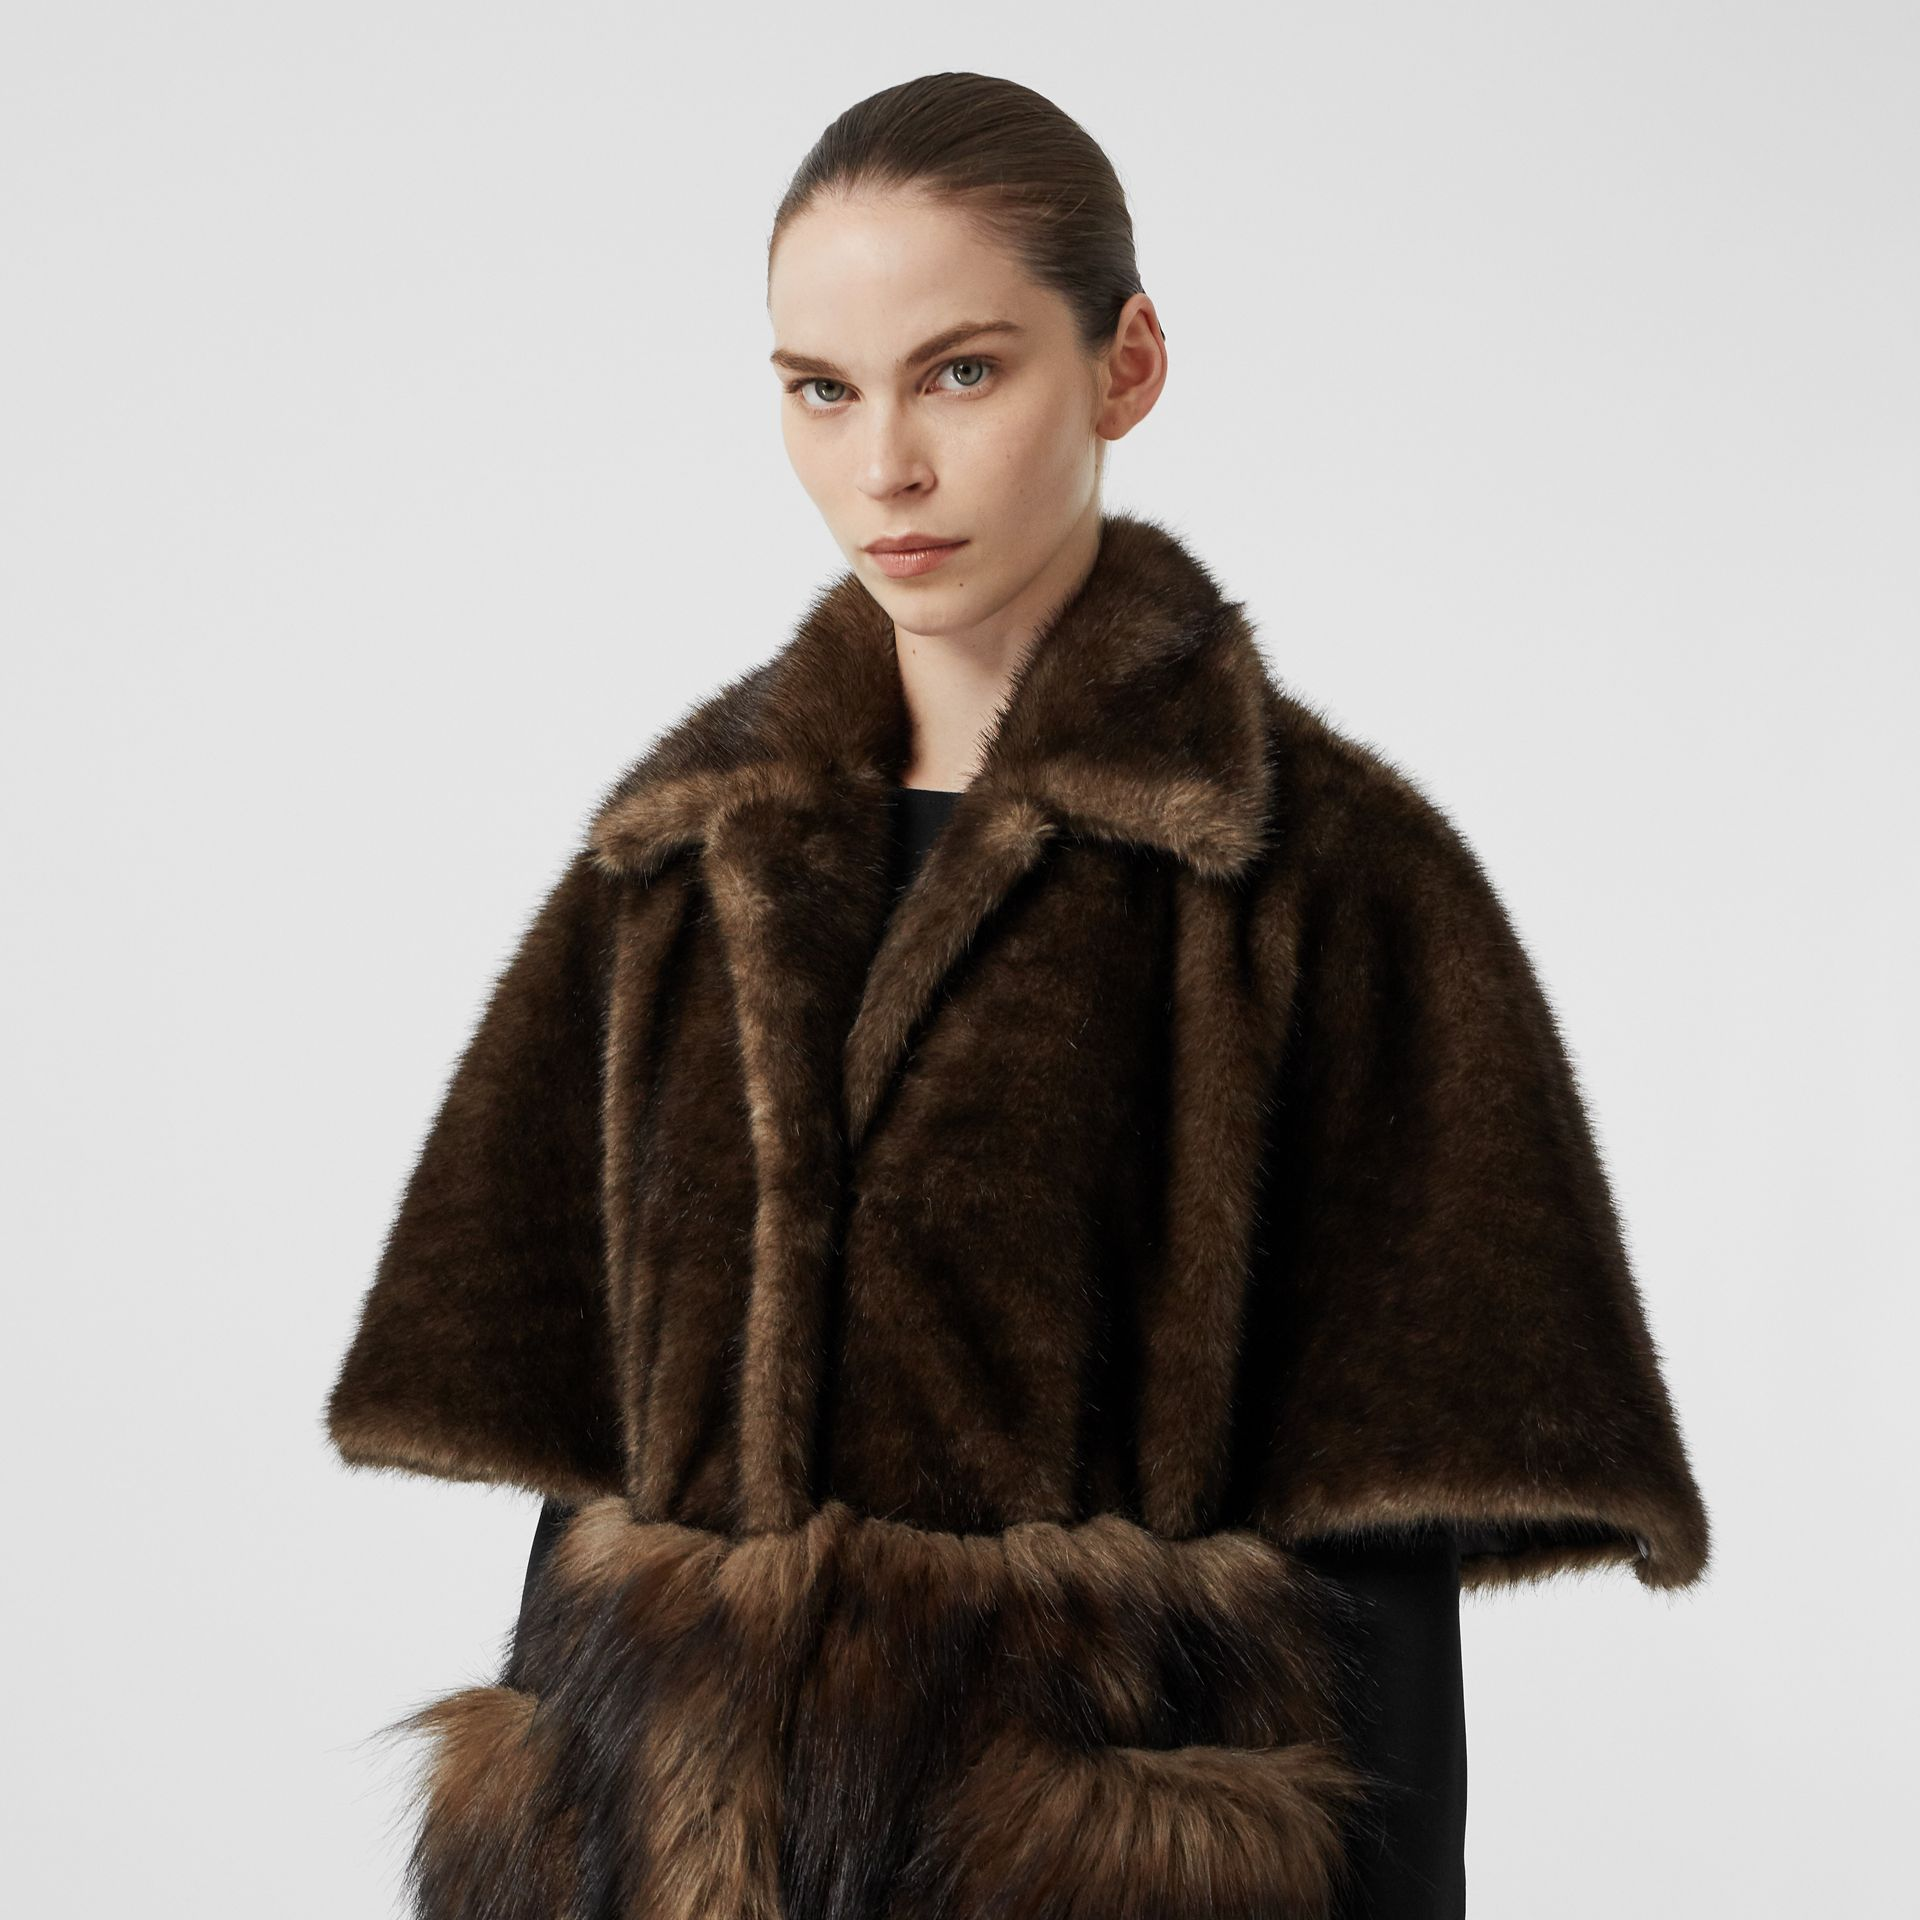 Faux Fur Cape Coat in Brown - Women | Burberry - gallery image 1